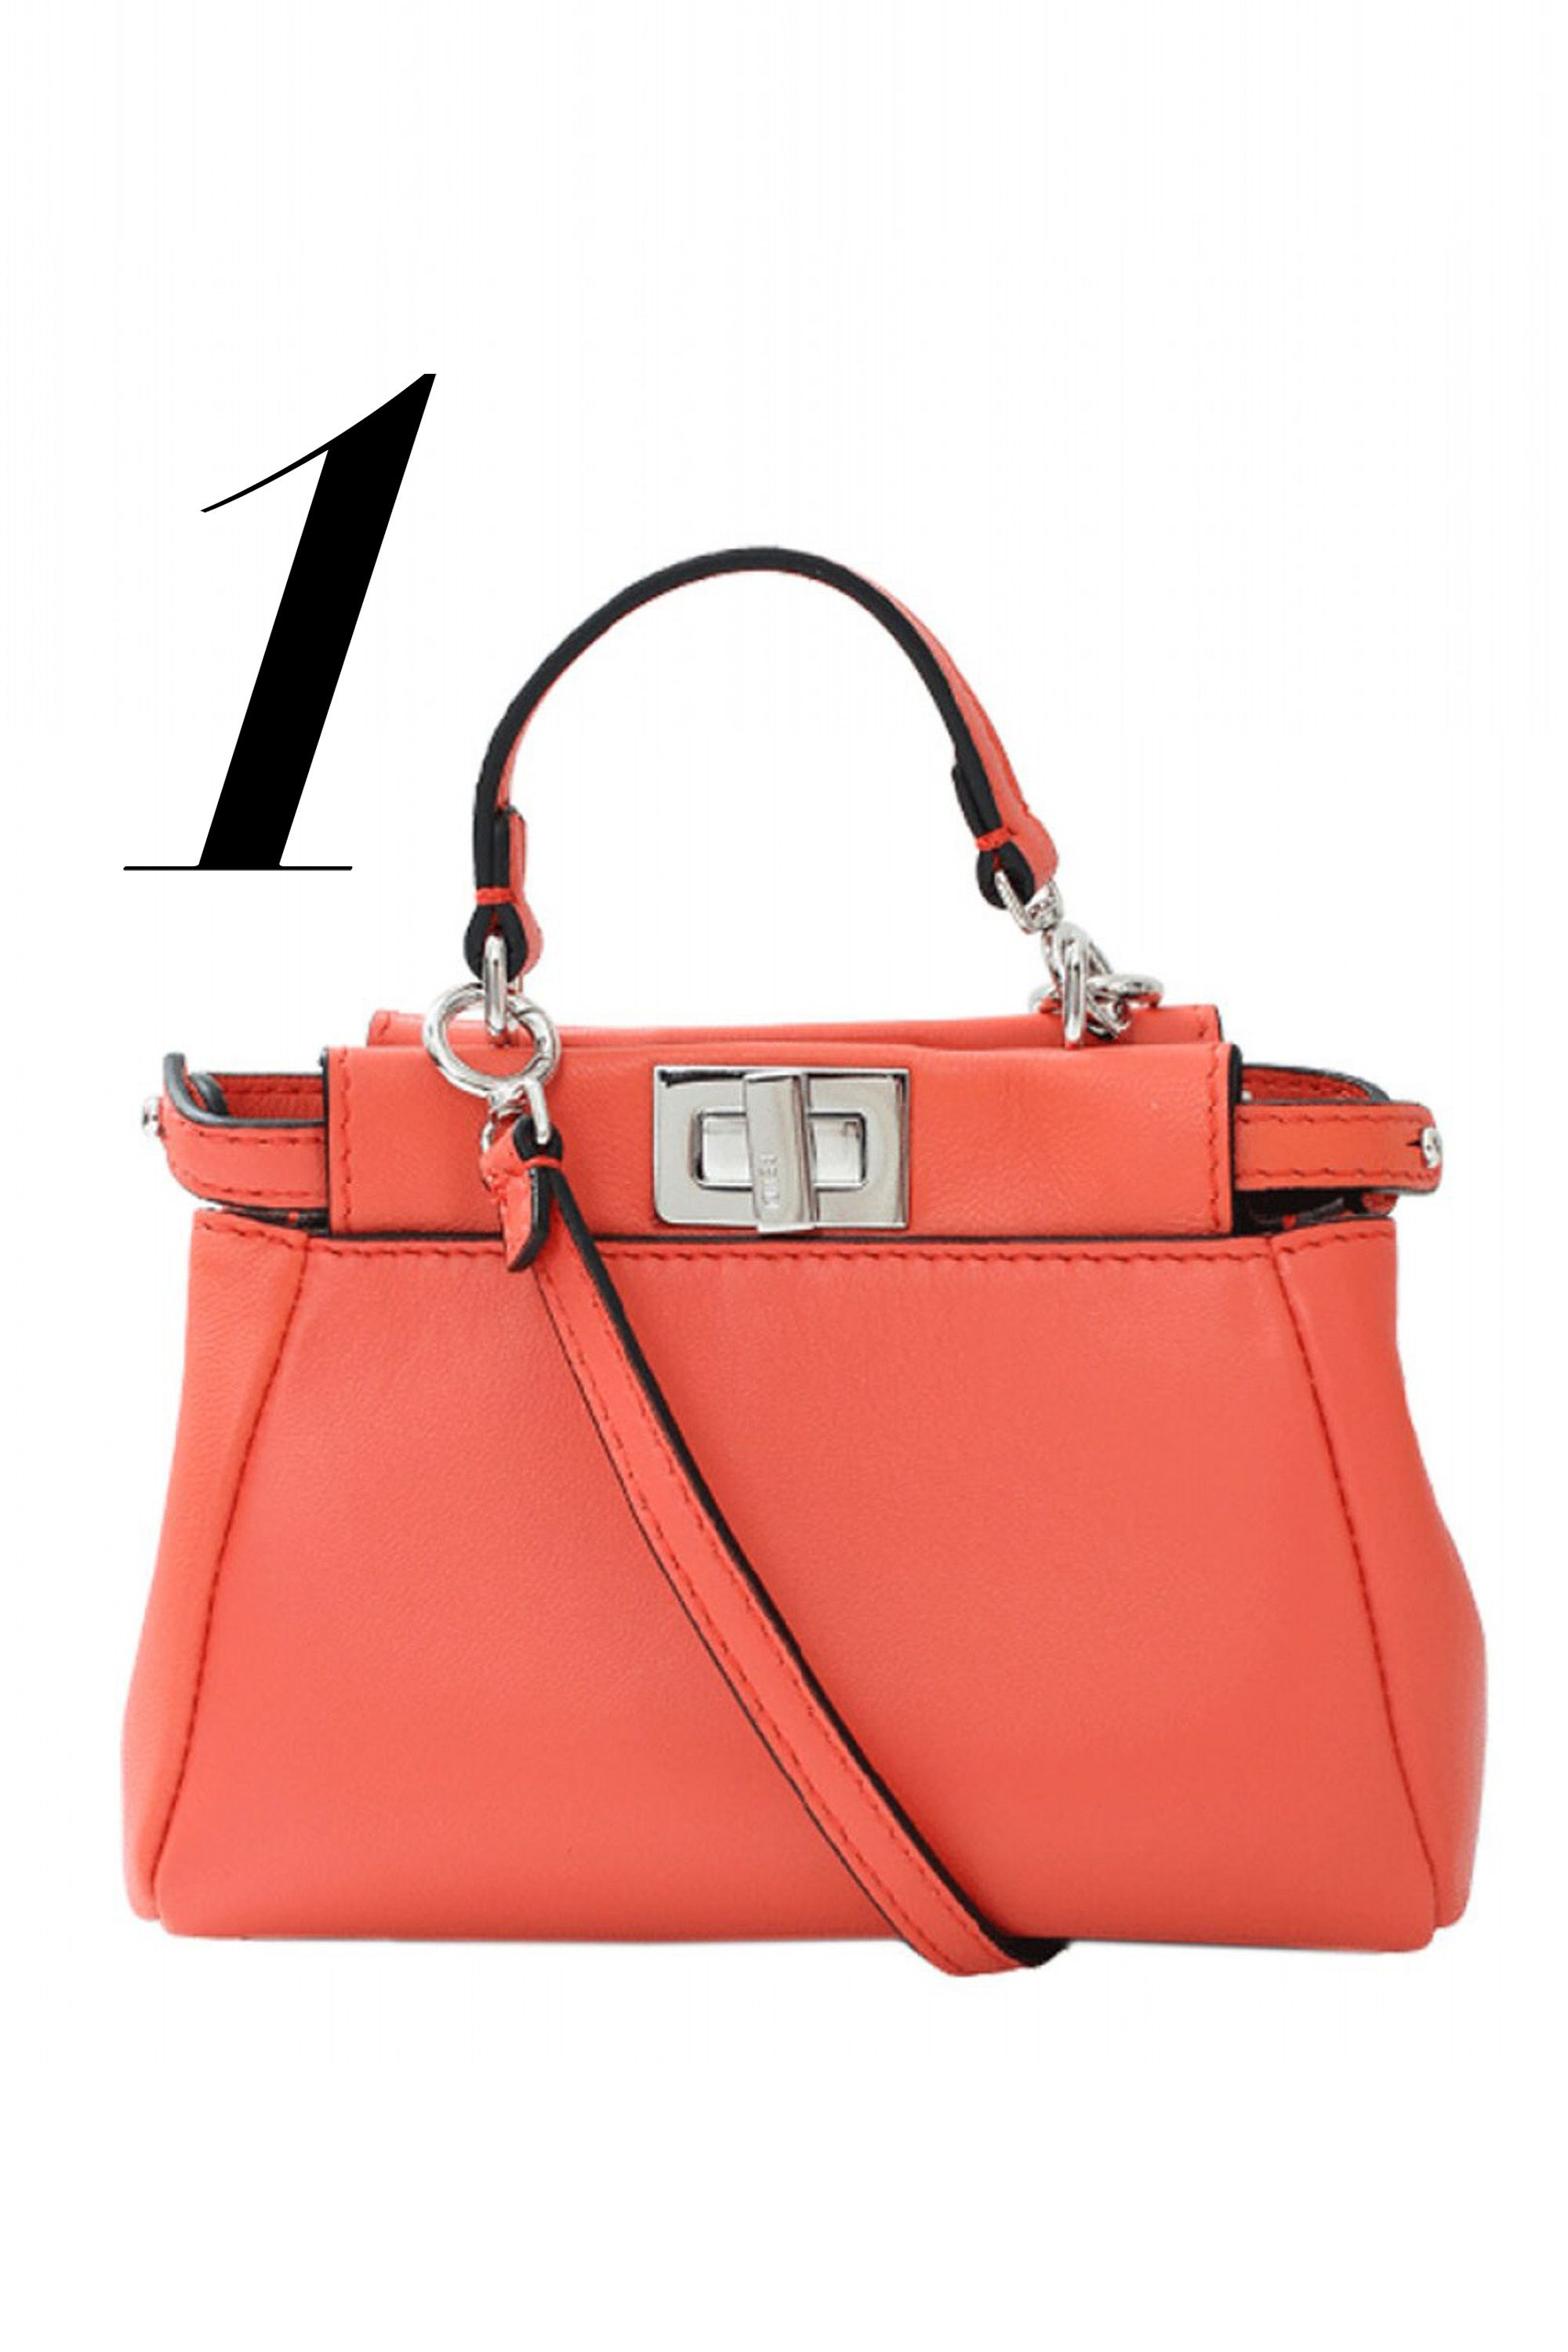 "<p><em>Fendi bag, $1,550, <a href=""http://shop.harpersbazaar.com/designers/fendi/micro-peekaboo-bag/"" target=""_blank"">shopBAZAAR.com</a>.</em></p>"